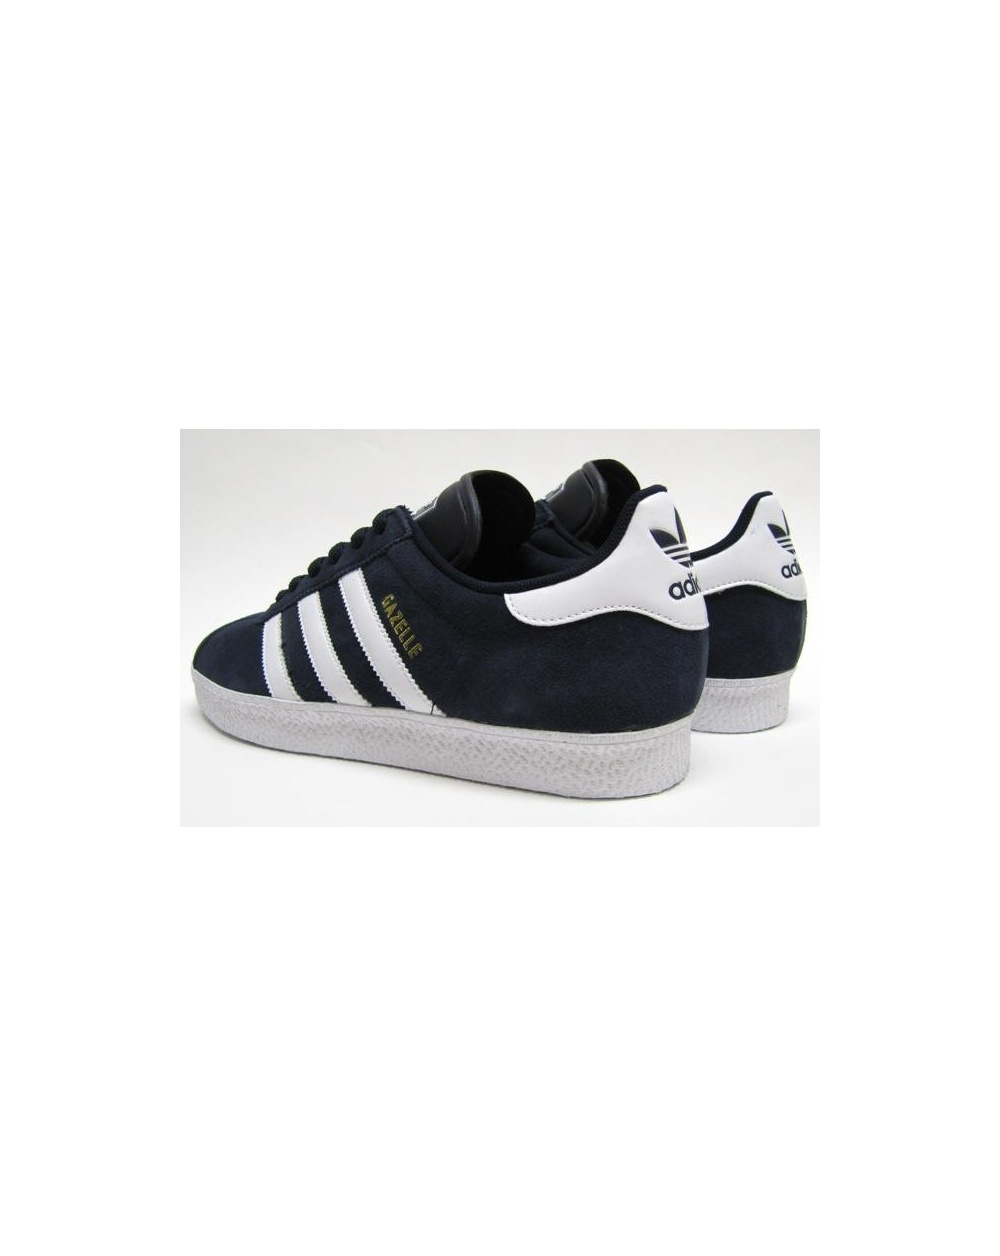 adidas gazelle 2 navy blue